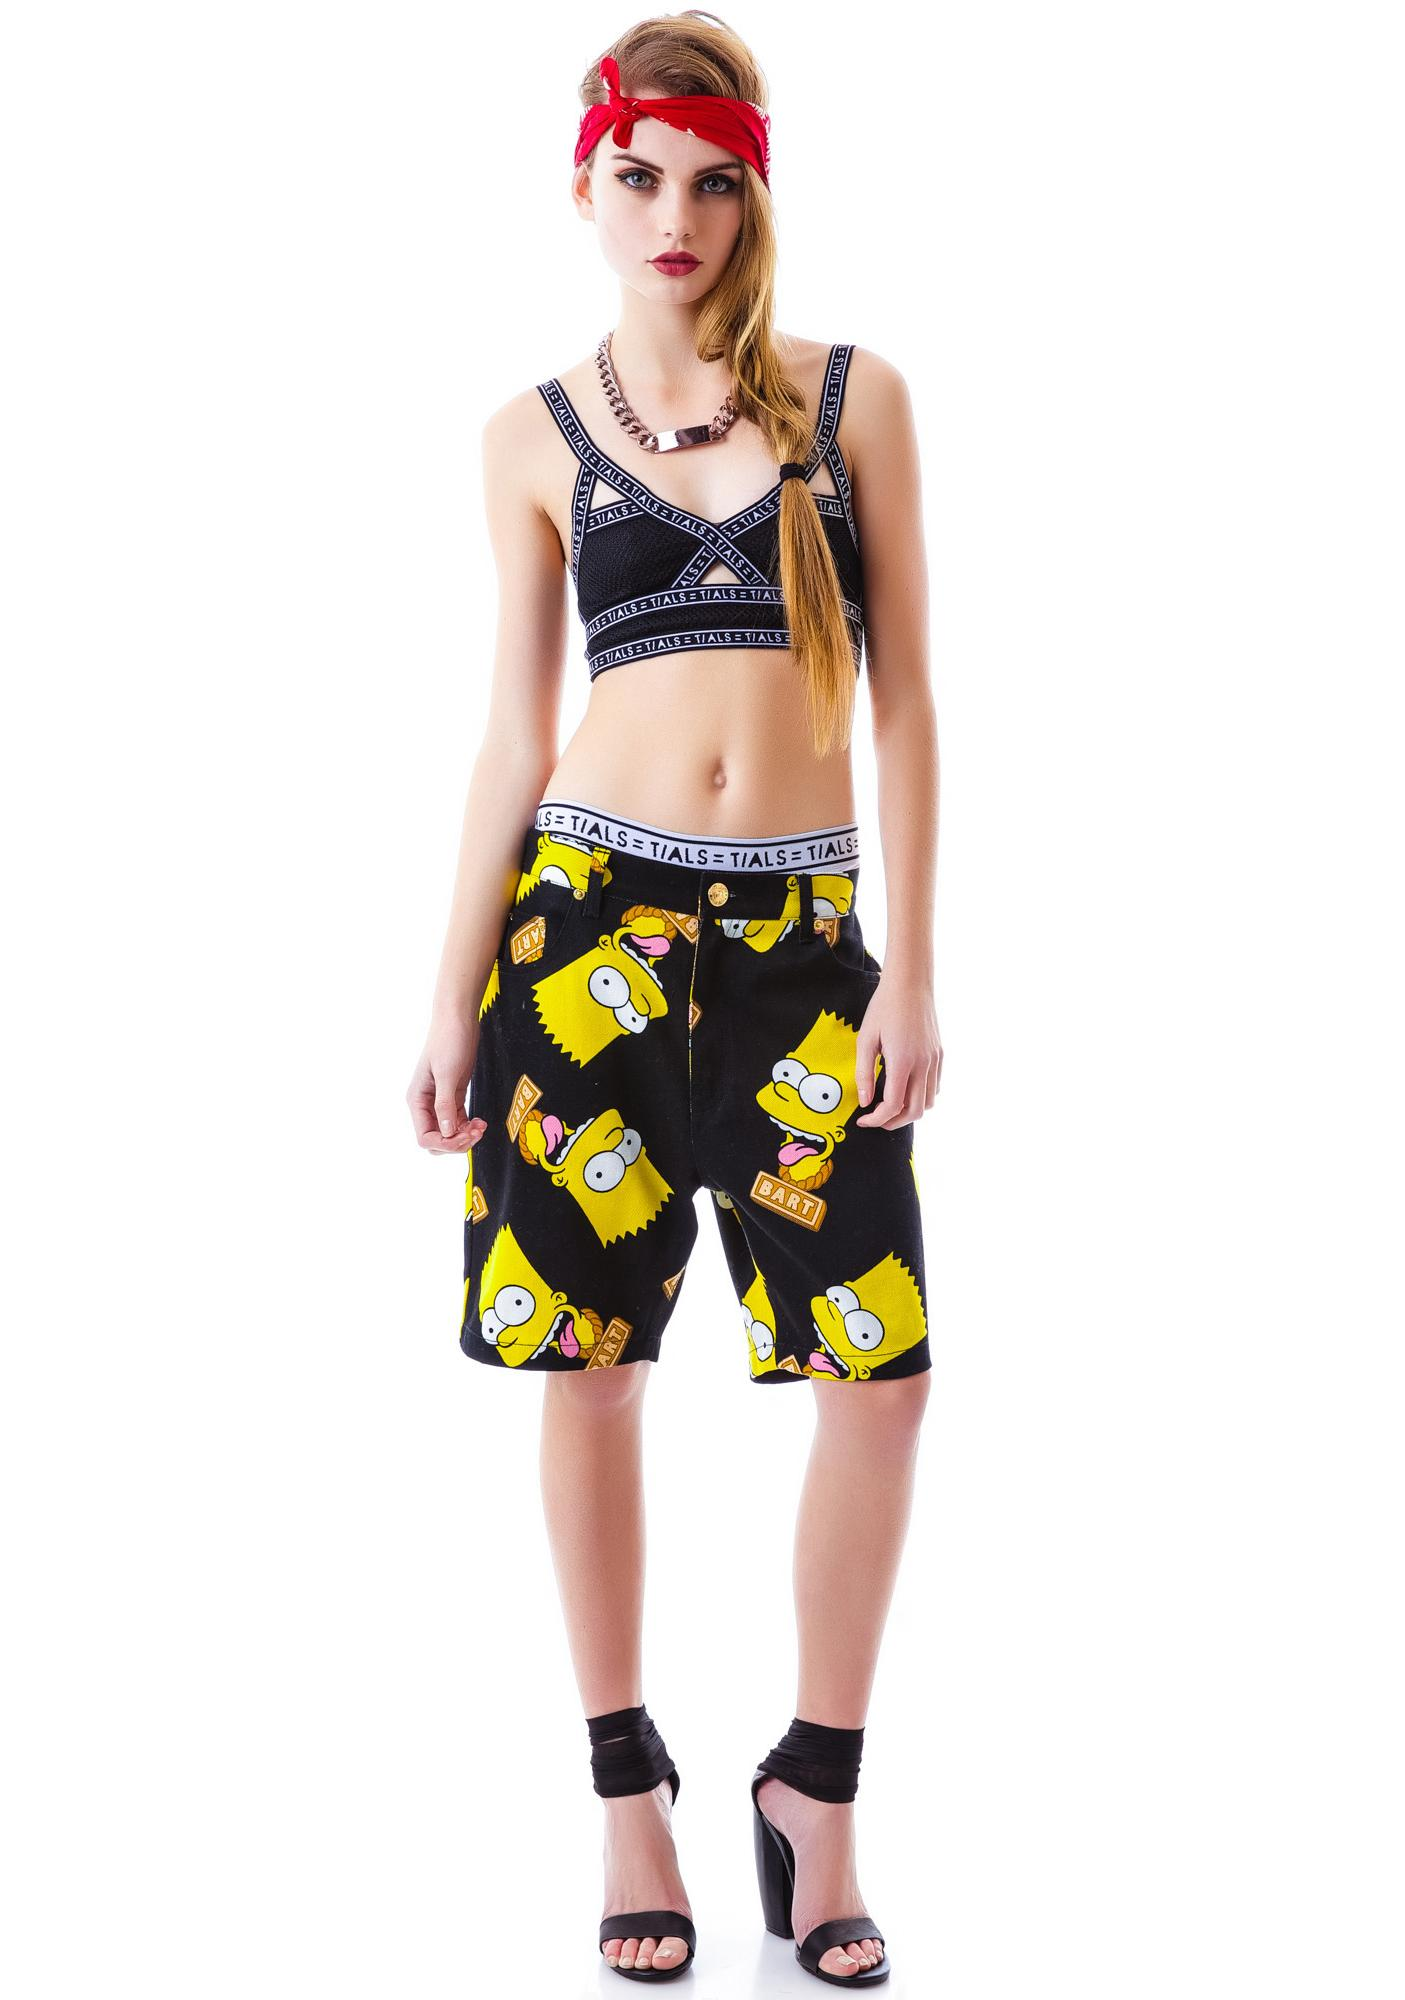 Joyrich Bart Face Shorts